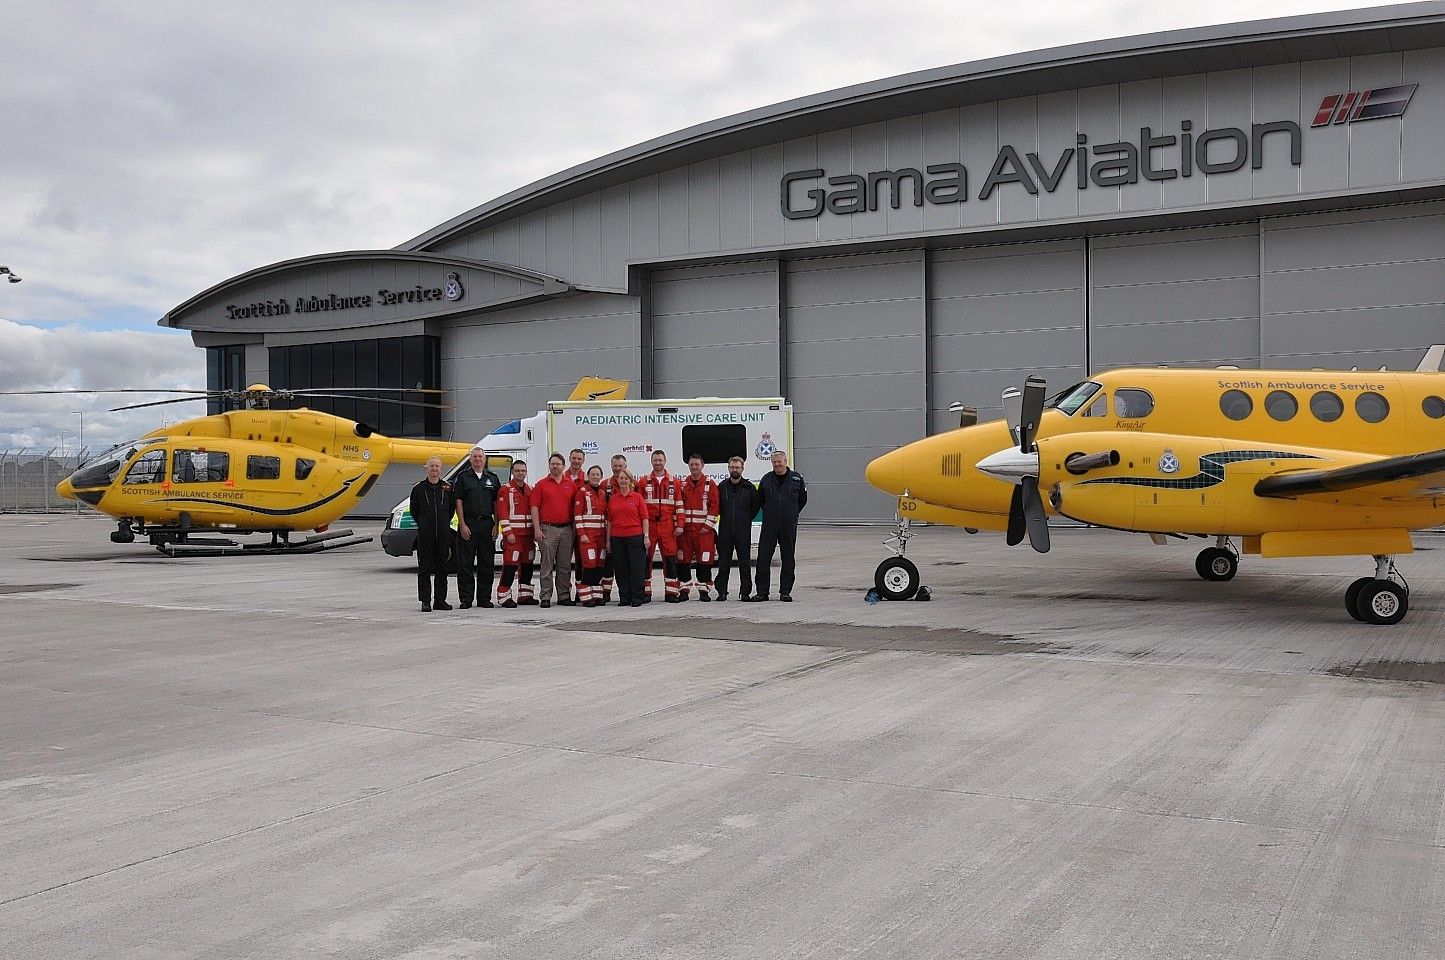 The firm, which counts the Scottish air ambulance service among its biggest clients, was the target of a reverse takeover by private jet operator Hangar 8 earlier this year